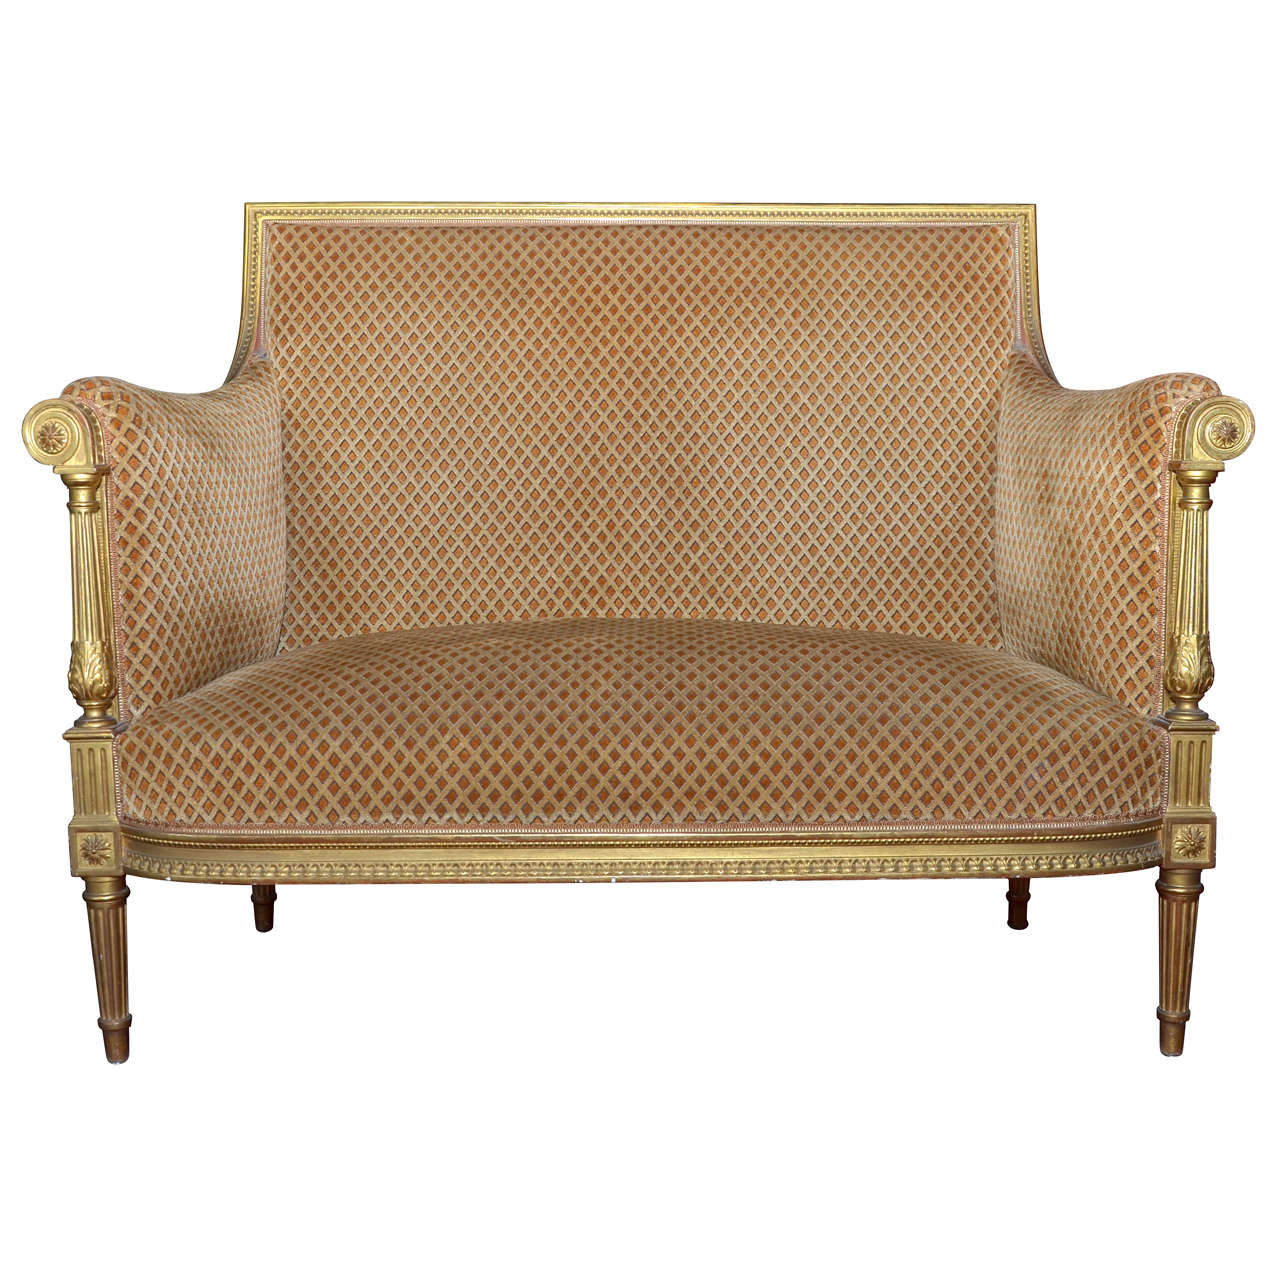 end of 19th century louis xvi style banquette at 1stdibs. Black Bedroom Furniture Sets. Home Design Ideas